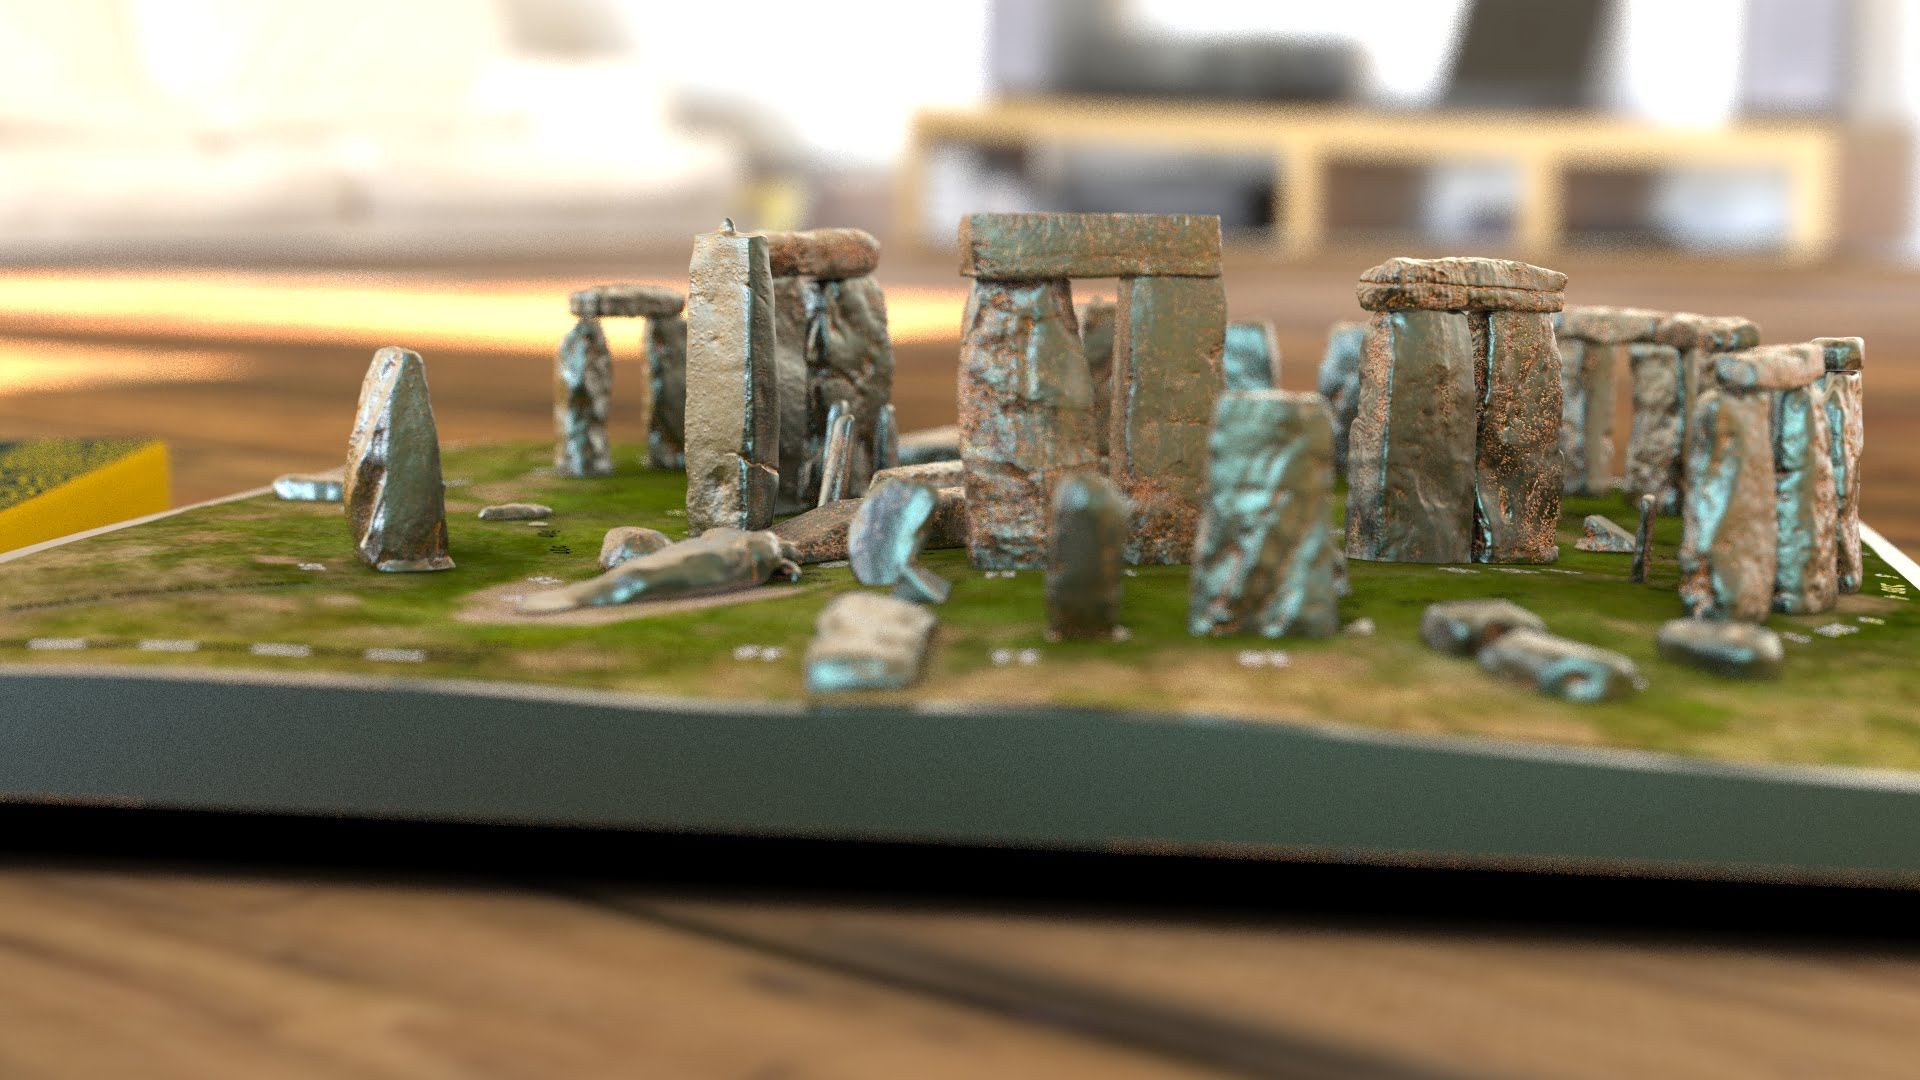 Buy Stonehenge Models: Light rust patina on cold cast Stonehenge model replica 195 x 195 mm or 7.7 x 7.7 inches square base with grass decal with or without numbered stones on ground map 010  - 200th scale pick n mix -